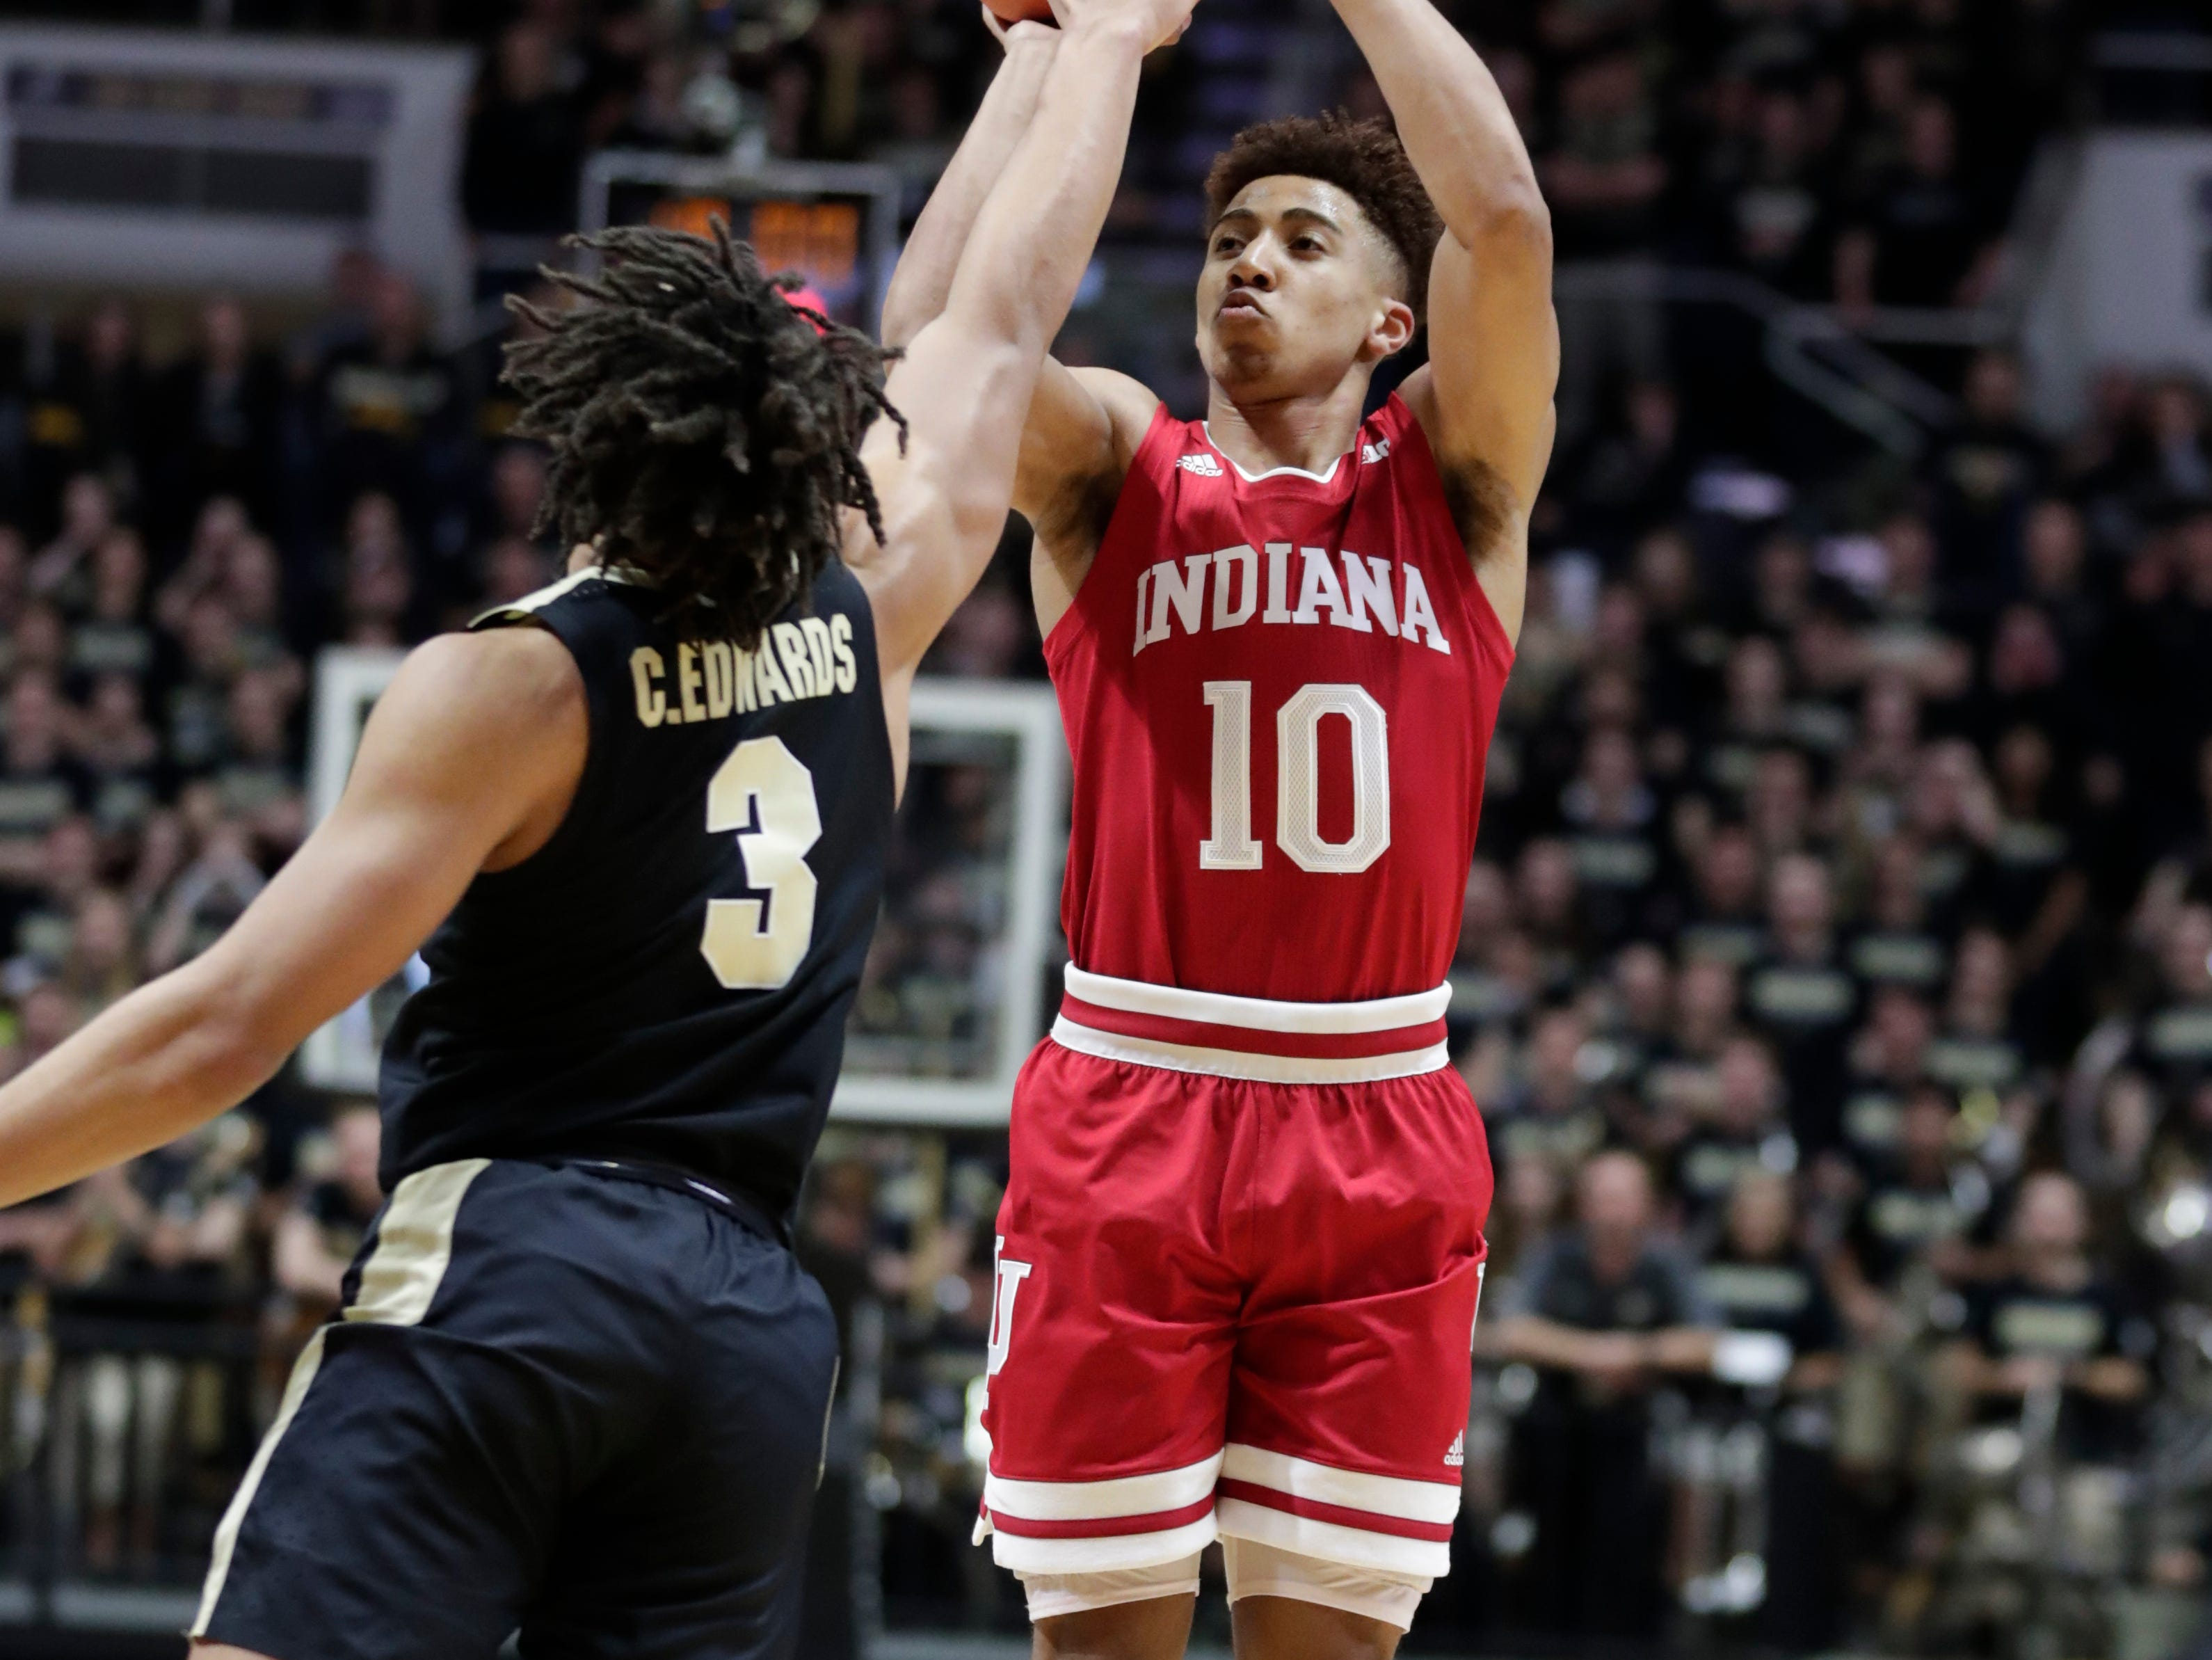 Indiana guard Rob Phinisee (10) shoots over Purdue guard Carsen Edwards (3) during the first half of an NCAA college basketball game in West Lafayette, Ind., Saturday, Jan. 19, 2019. (AP Photo/Michael Conroy)